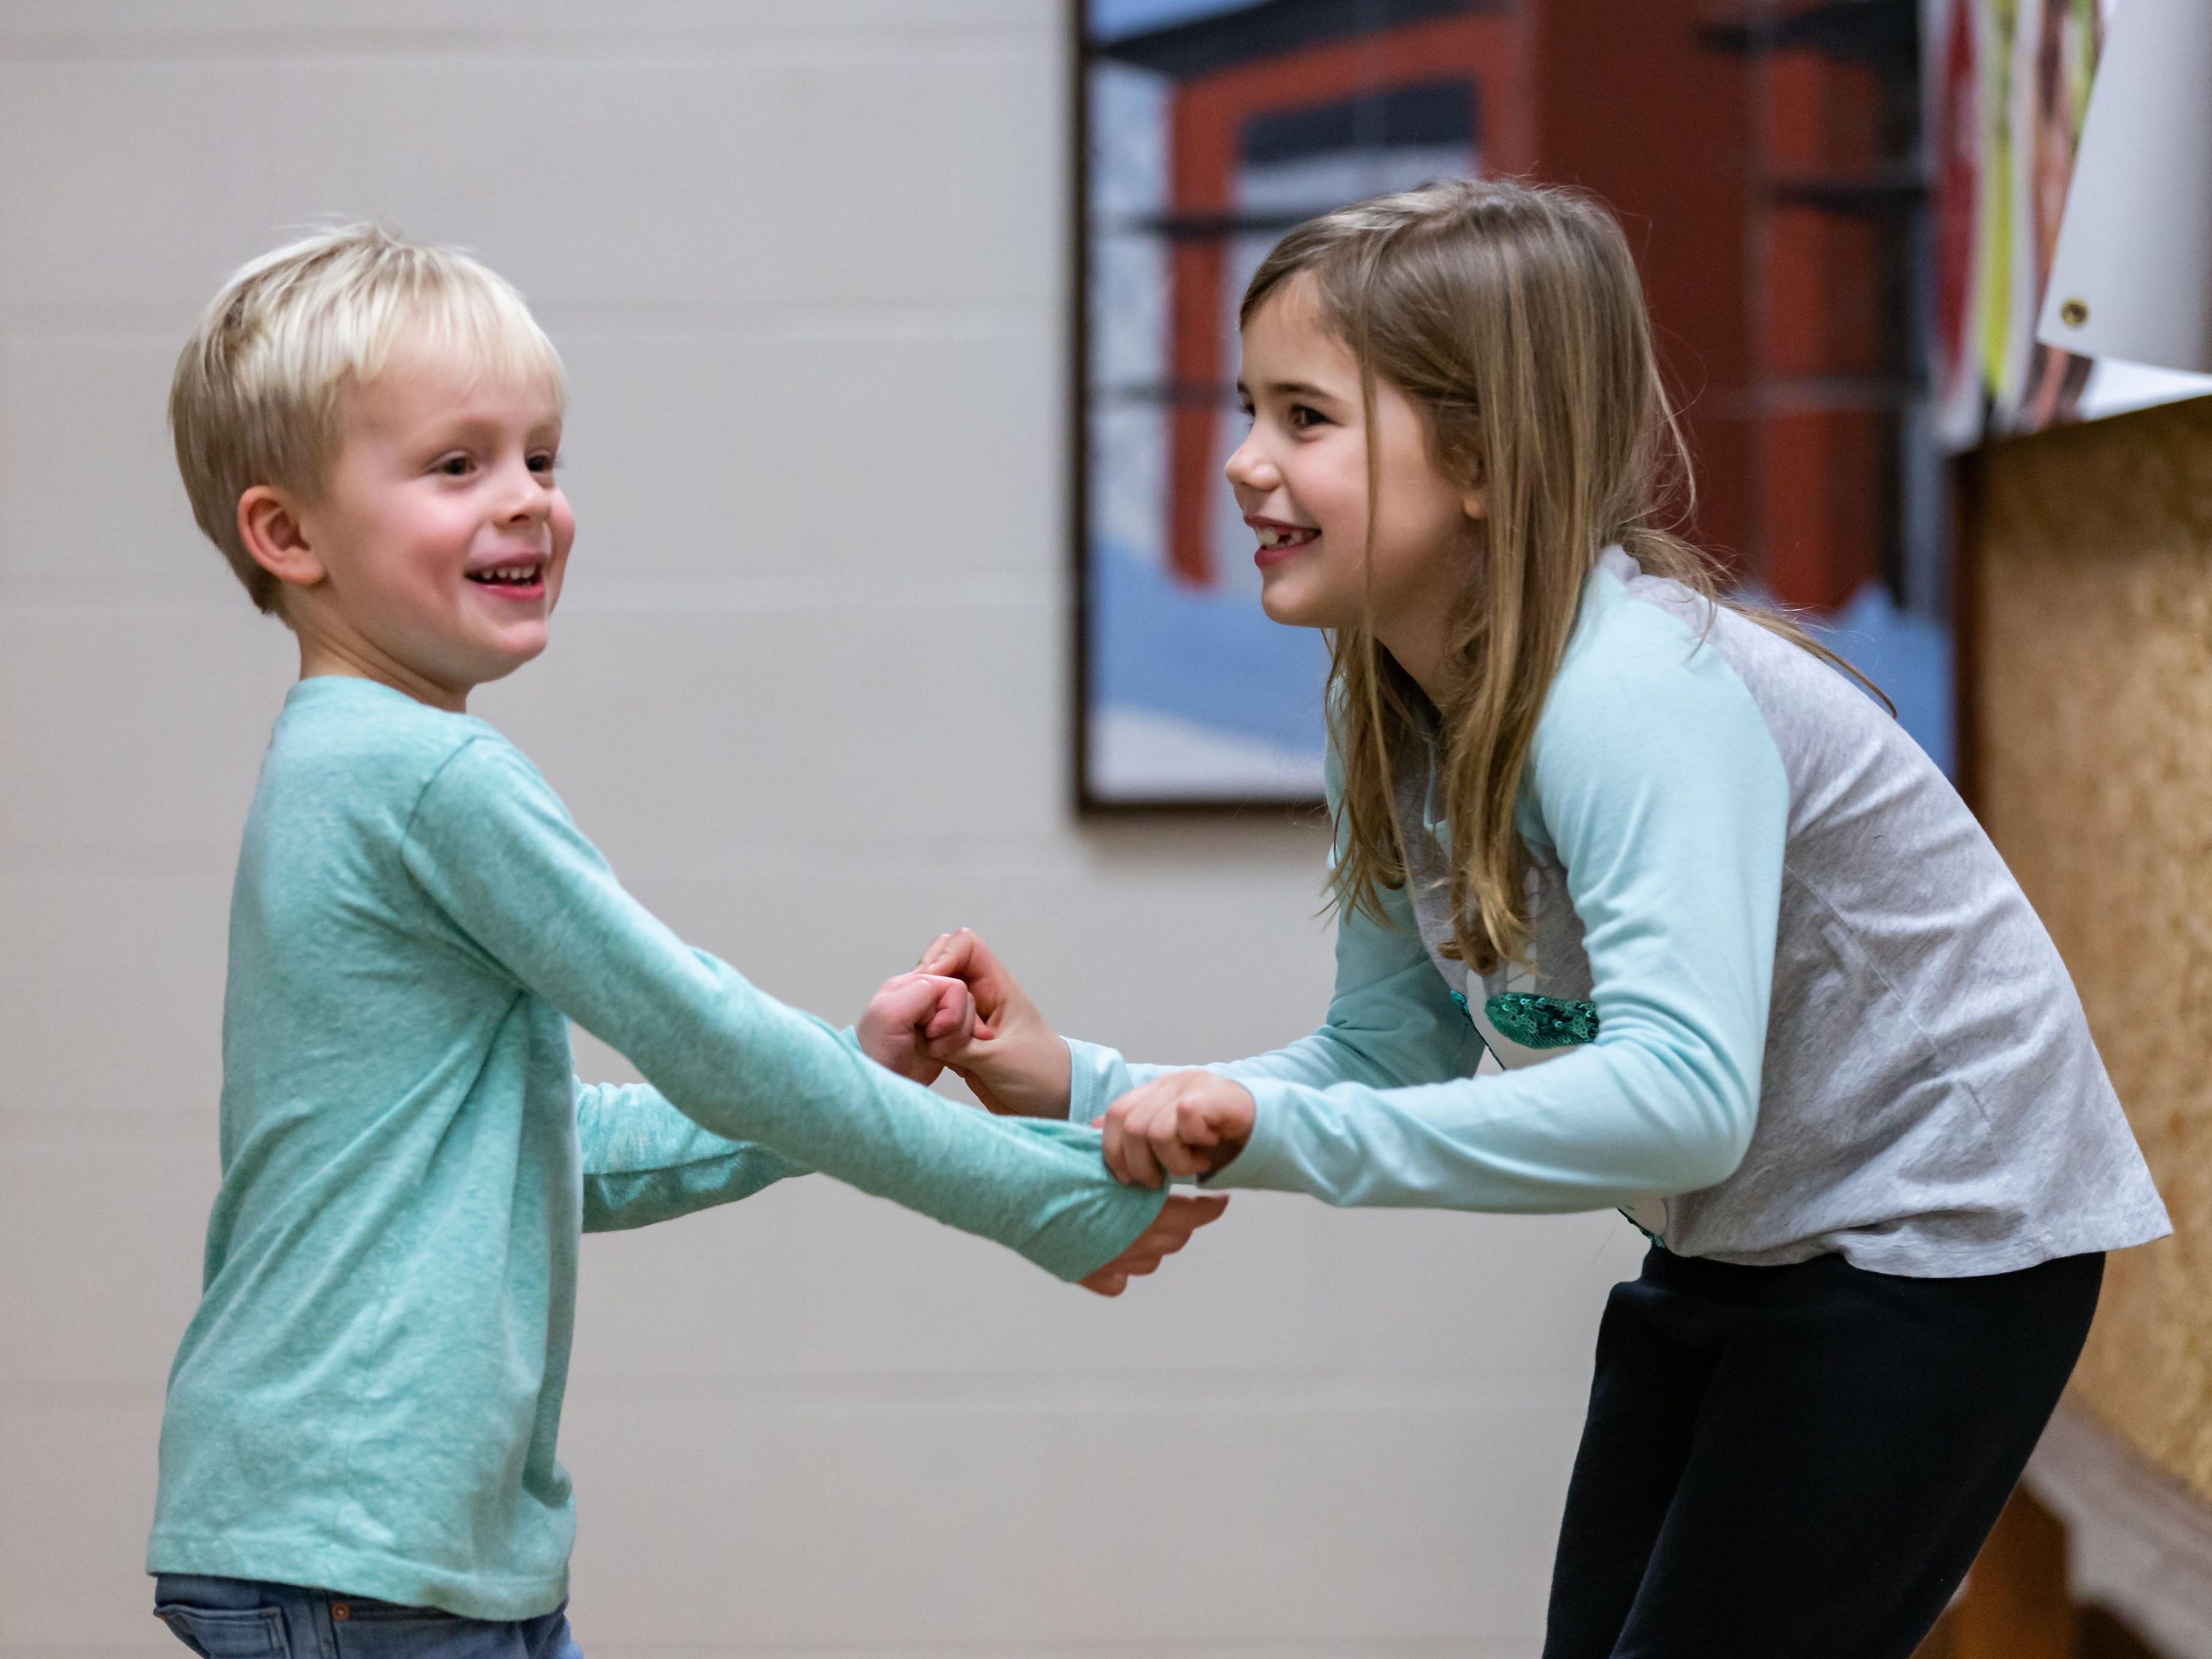 Five-year-old Braxton Chapman of Nashotah and Evelyn Borg, 7, of Oconomowoc, act out a scene during a free, Open House theatre class hosted by Lake Country Playhouse in Hartland on Monday, Jan. 7, 2019.